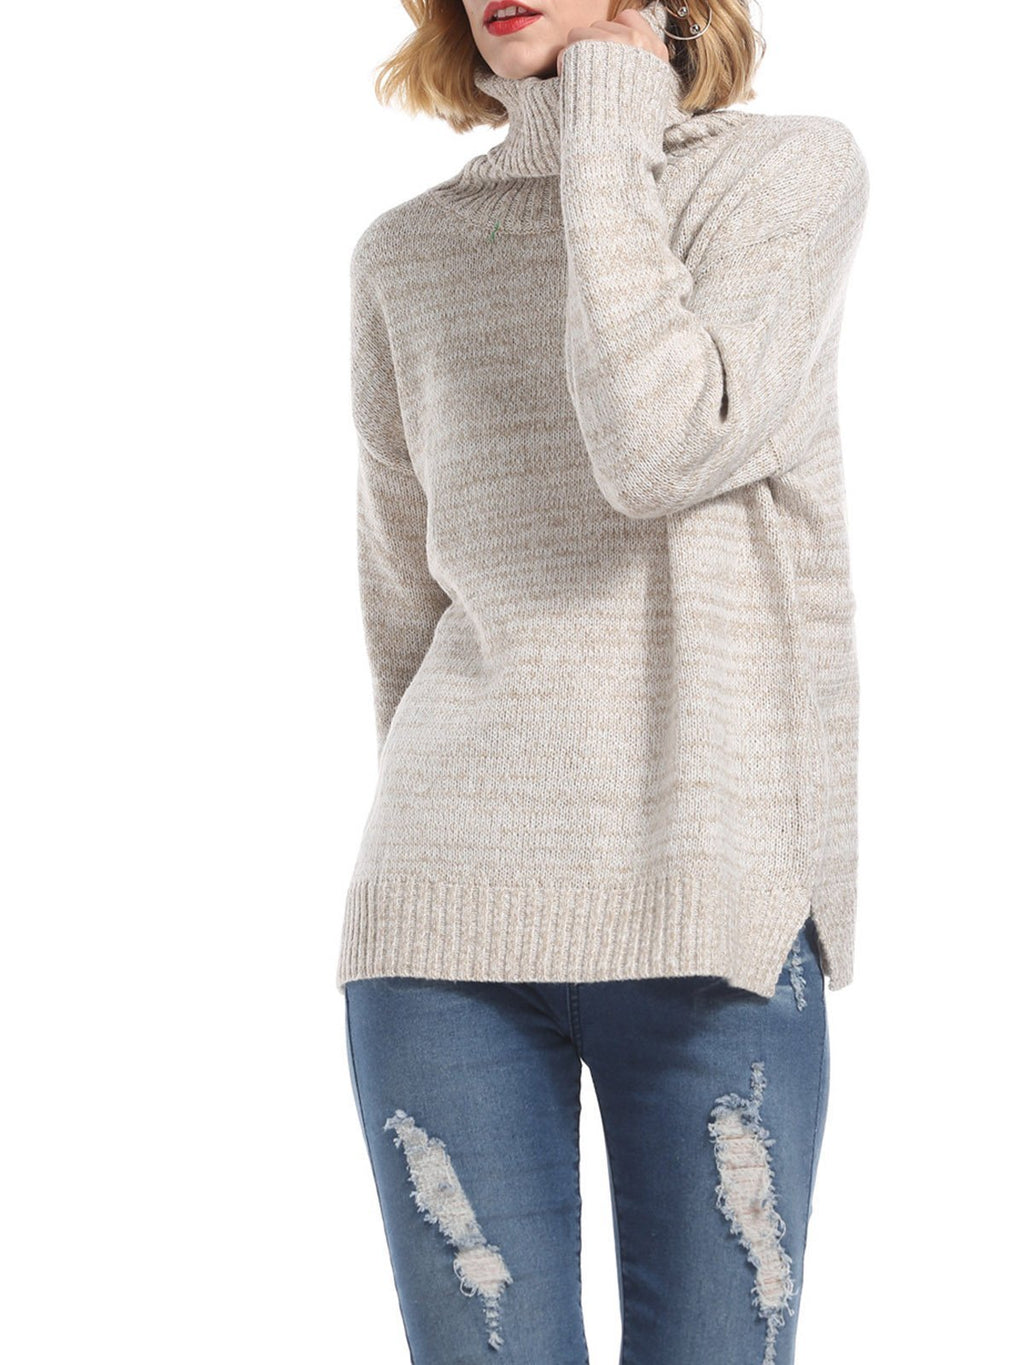 Knitted High Collar Solid Color Long Sleeve Bottoming Sweater